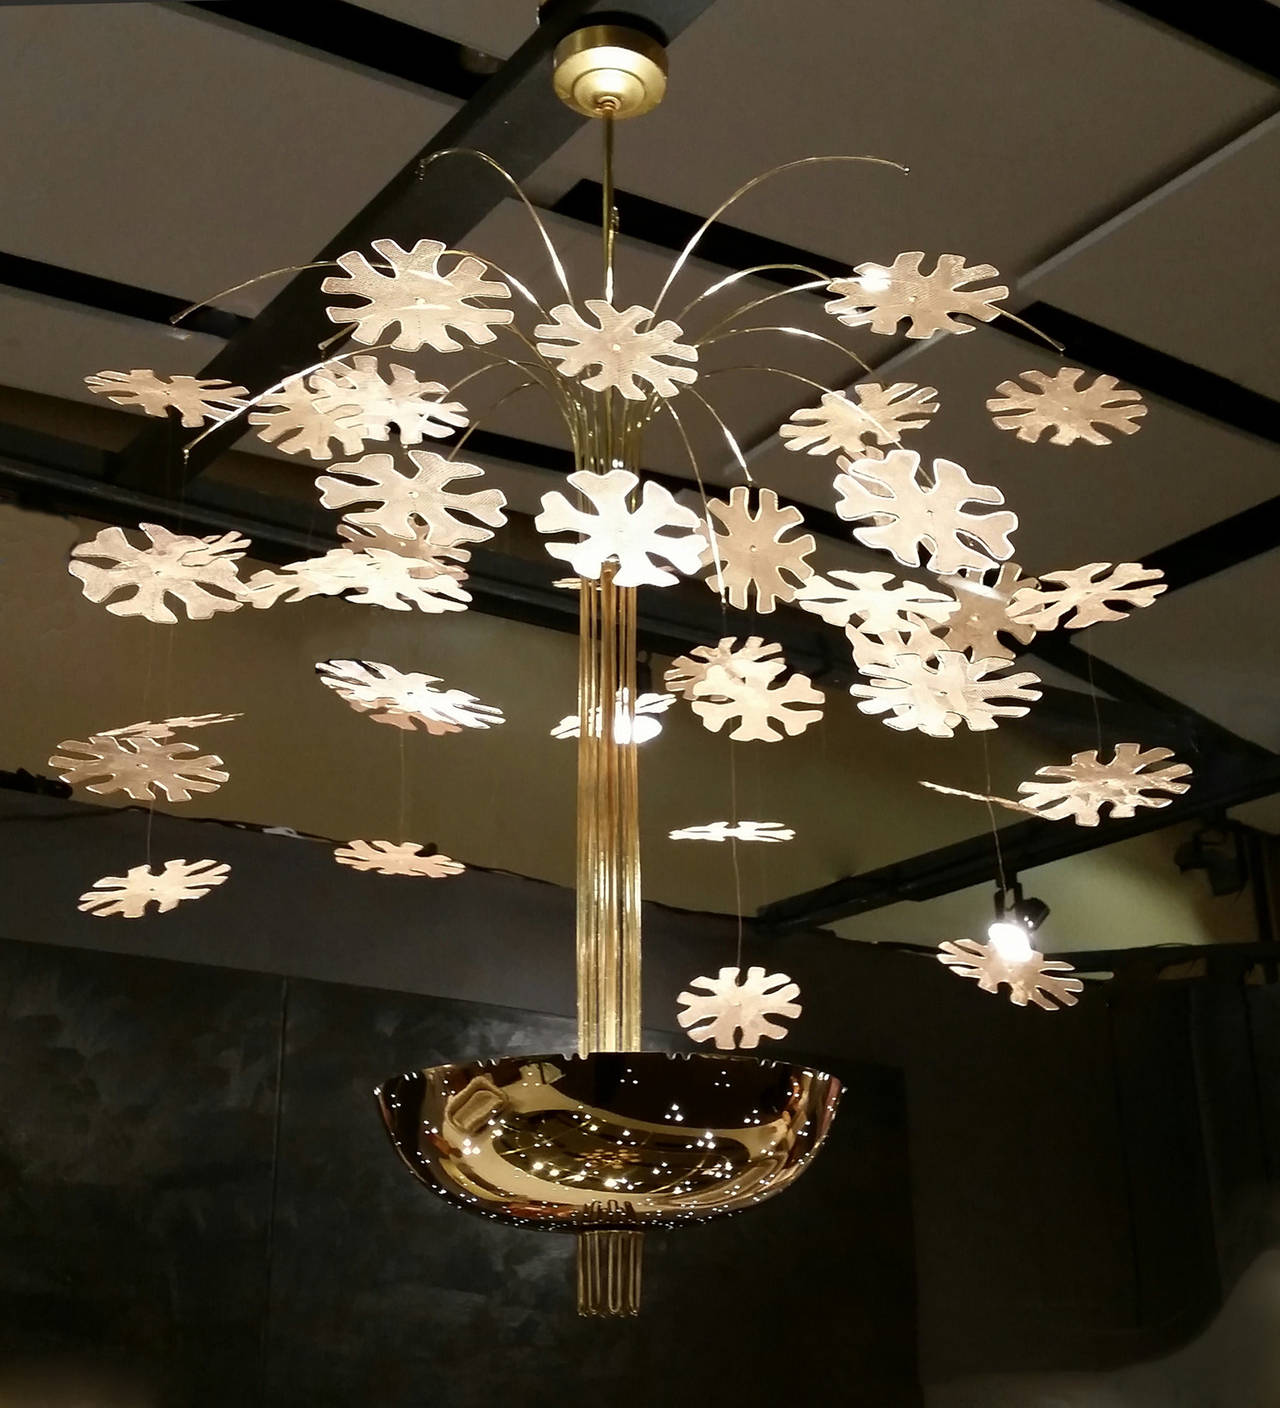 Magnificent paavo tynell snowflake chandelier at 1stdibs the quintessential scandinavian modernist model 9041 snowflake chandelier by paavo tynell for taito oy this mozeypictures Choice Image